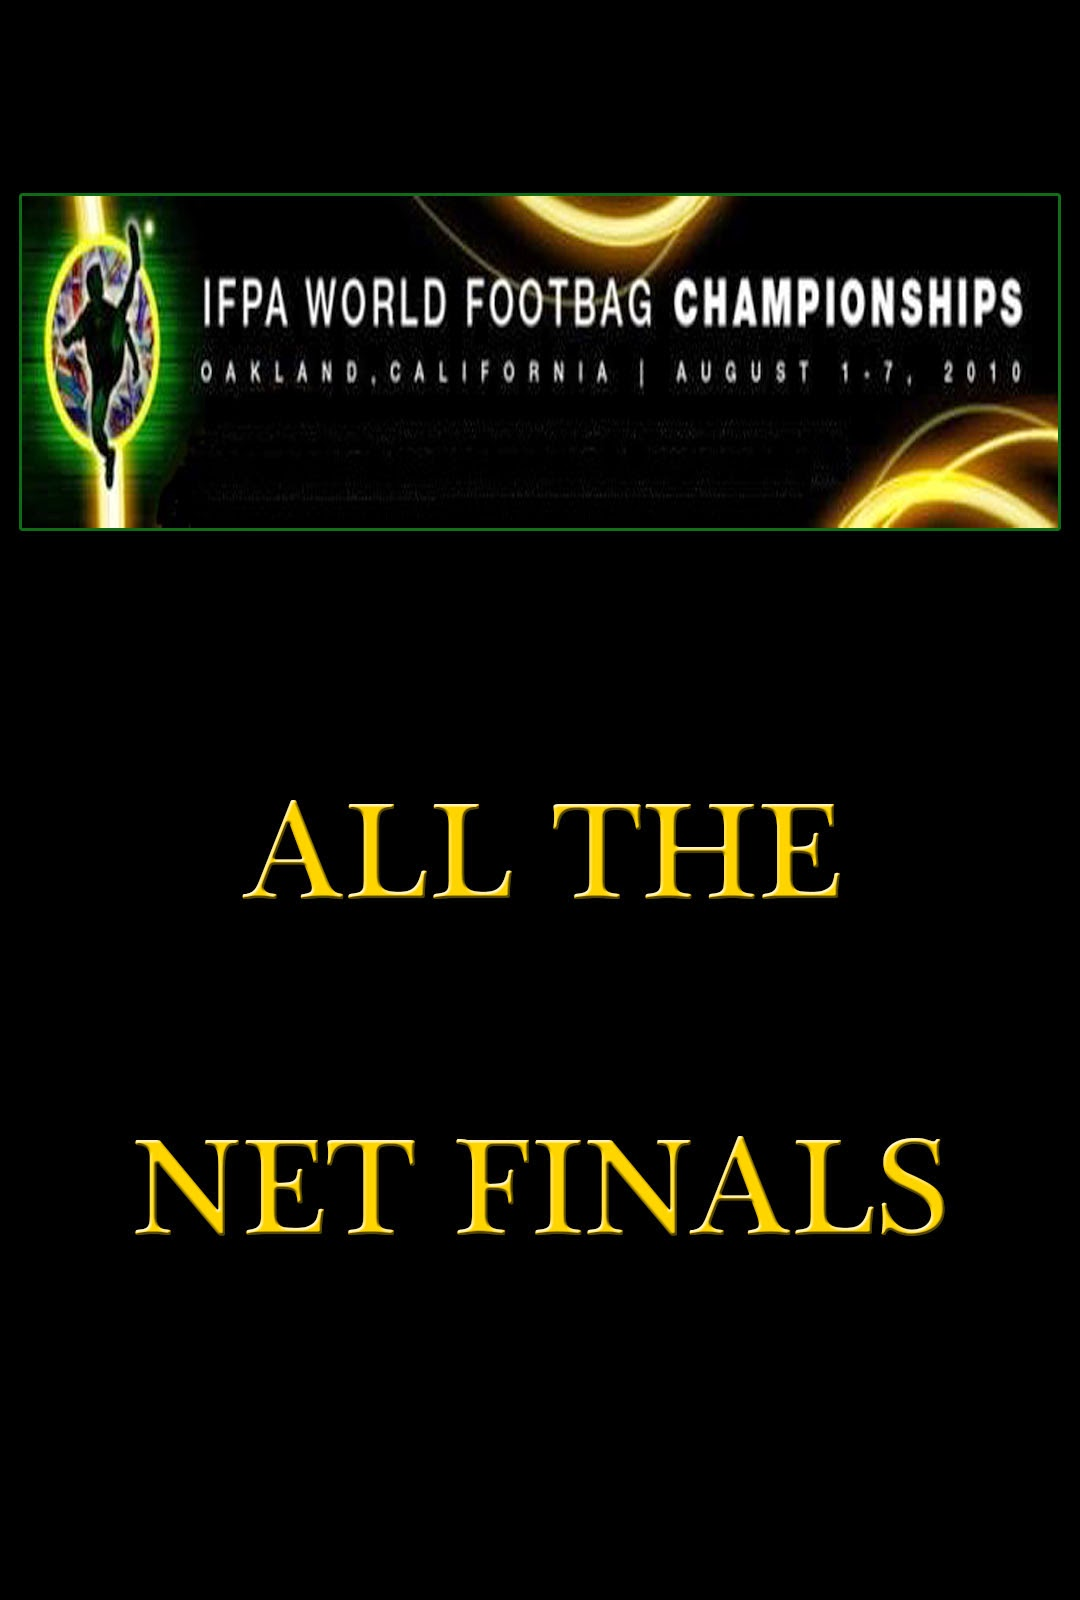 http://wfc10netfinals.footbagarchives.com/